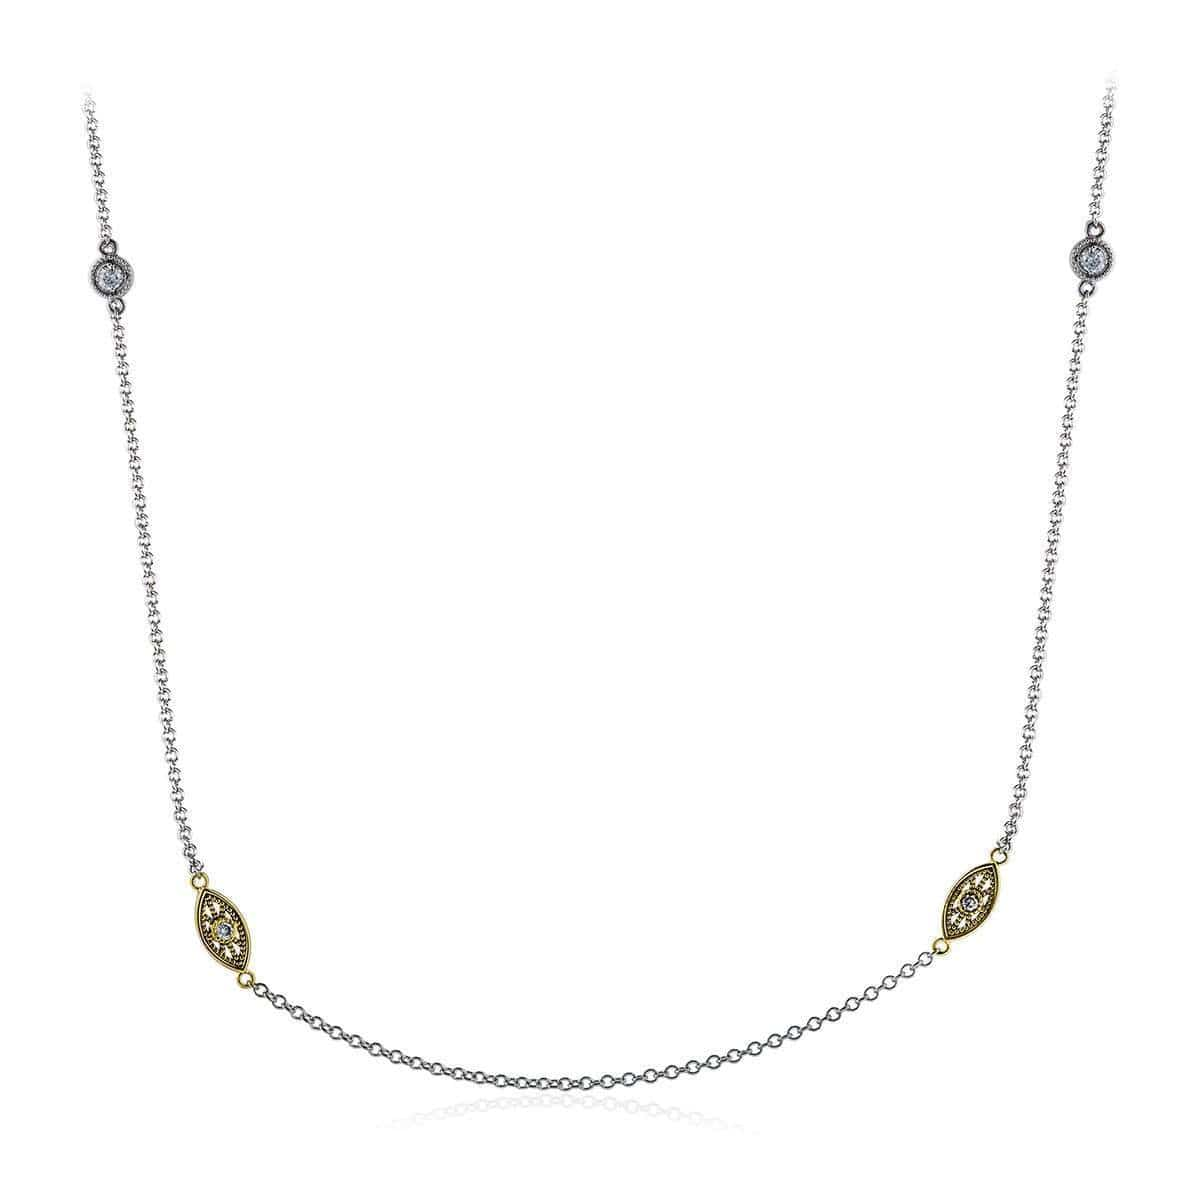 18k White & Yellow Gold Rounds Diamonds Chain - CH101-YW